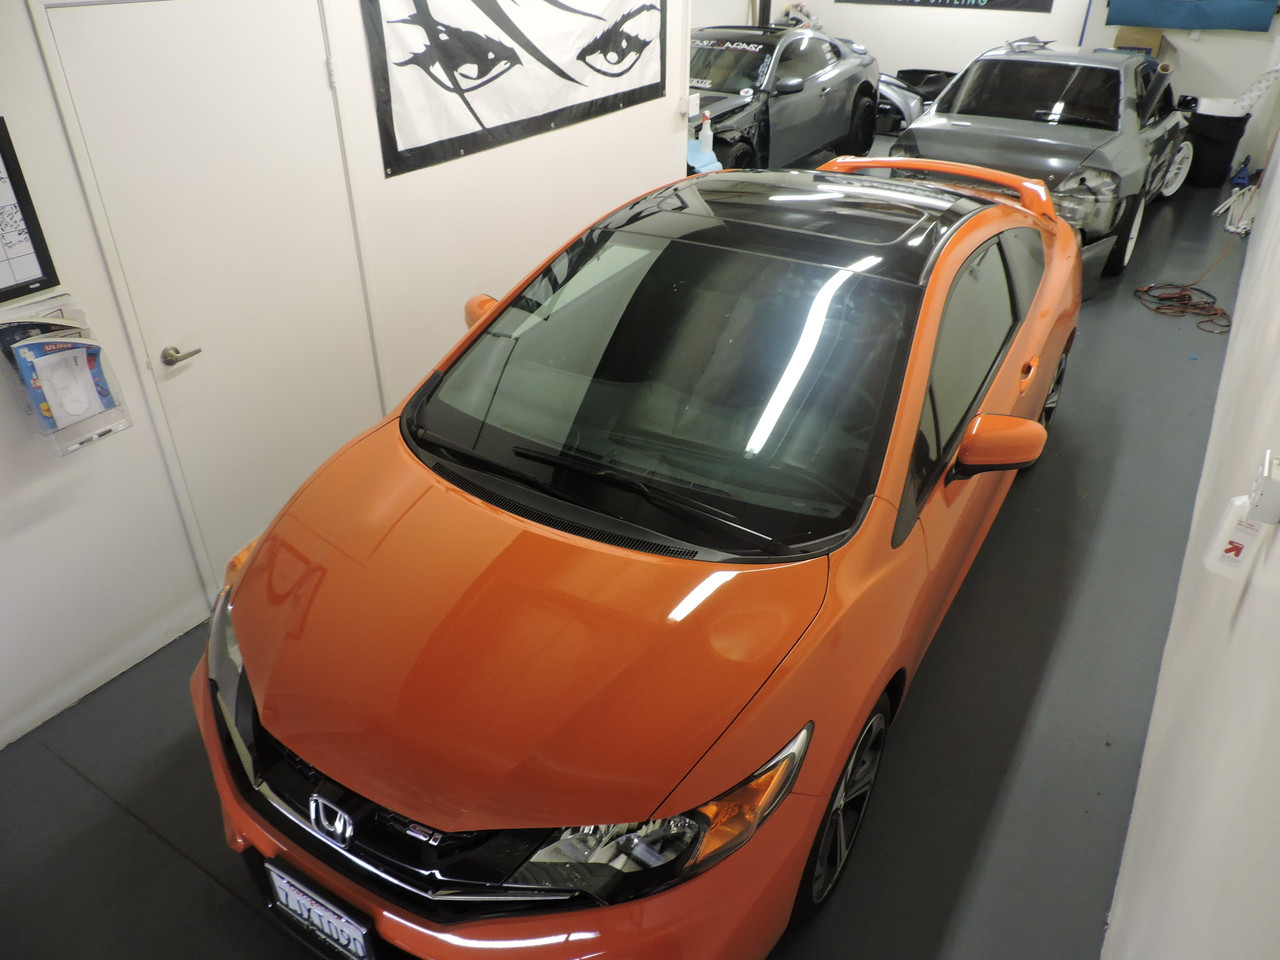 2015 Civic Coupe Vinyl Roof Wrap Kit